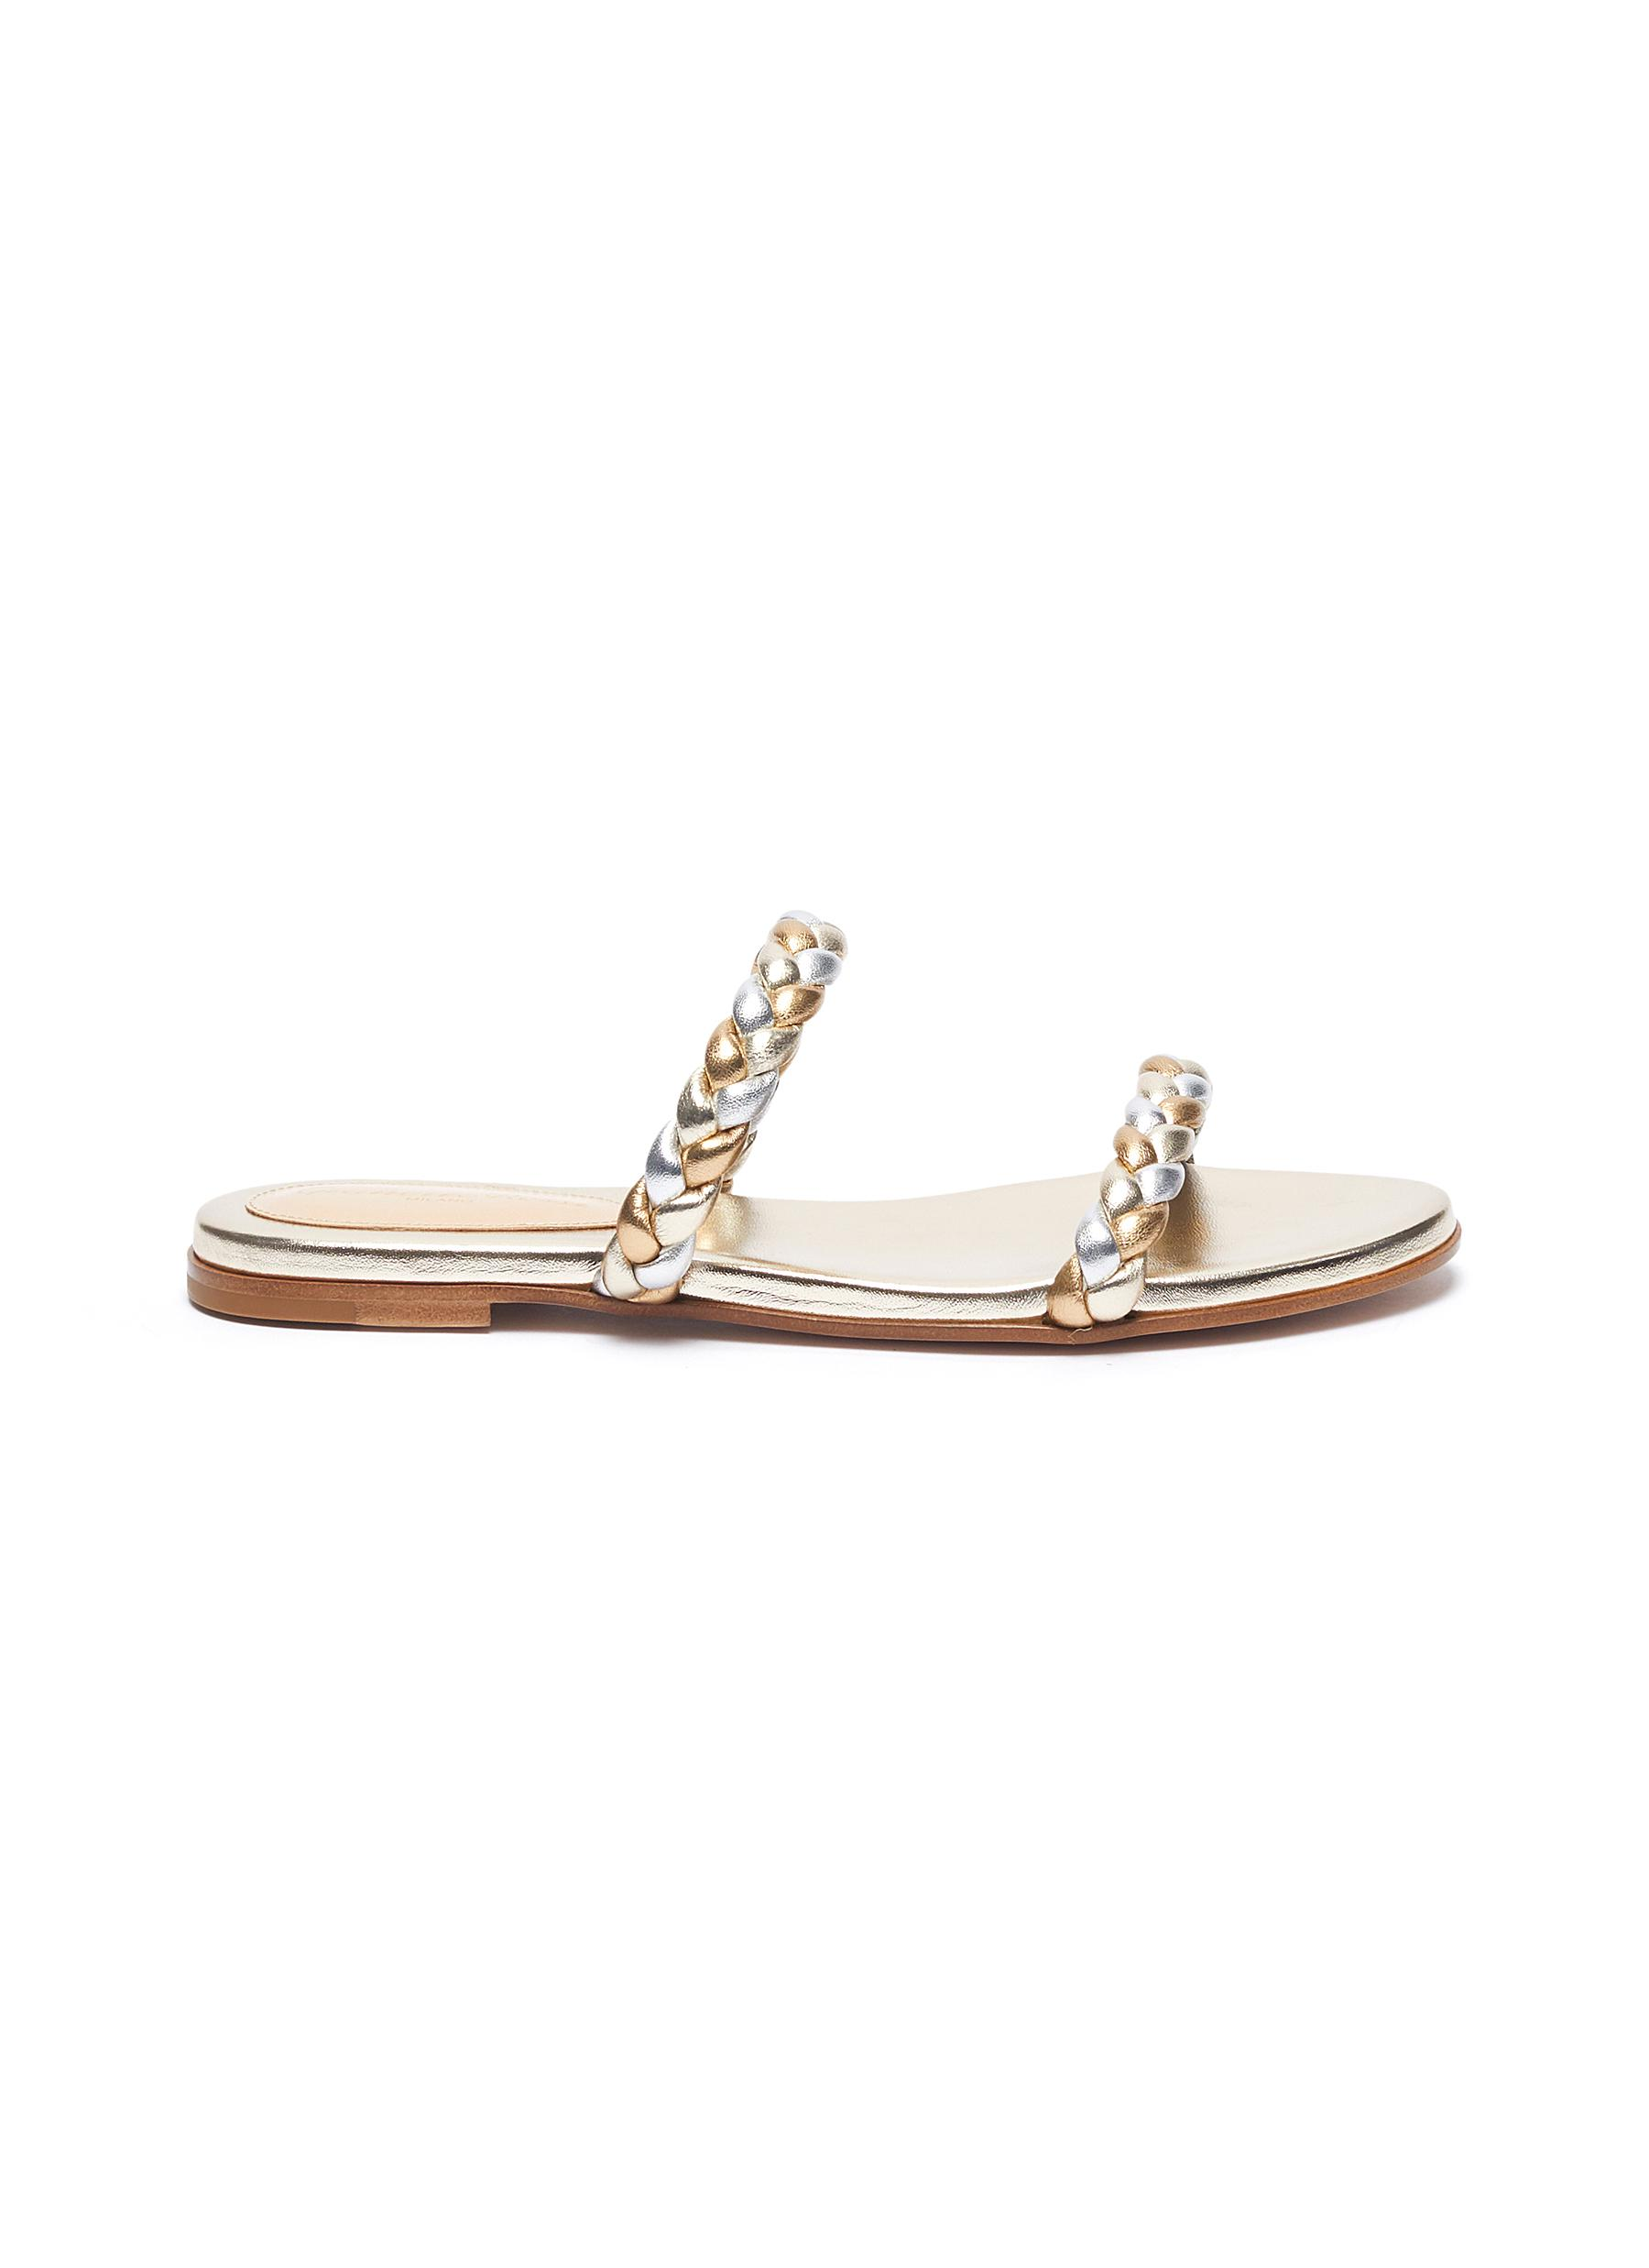 Gianvito Rossi WOVEN LEATHER FLAT SANDALS